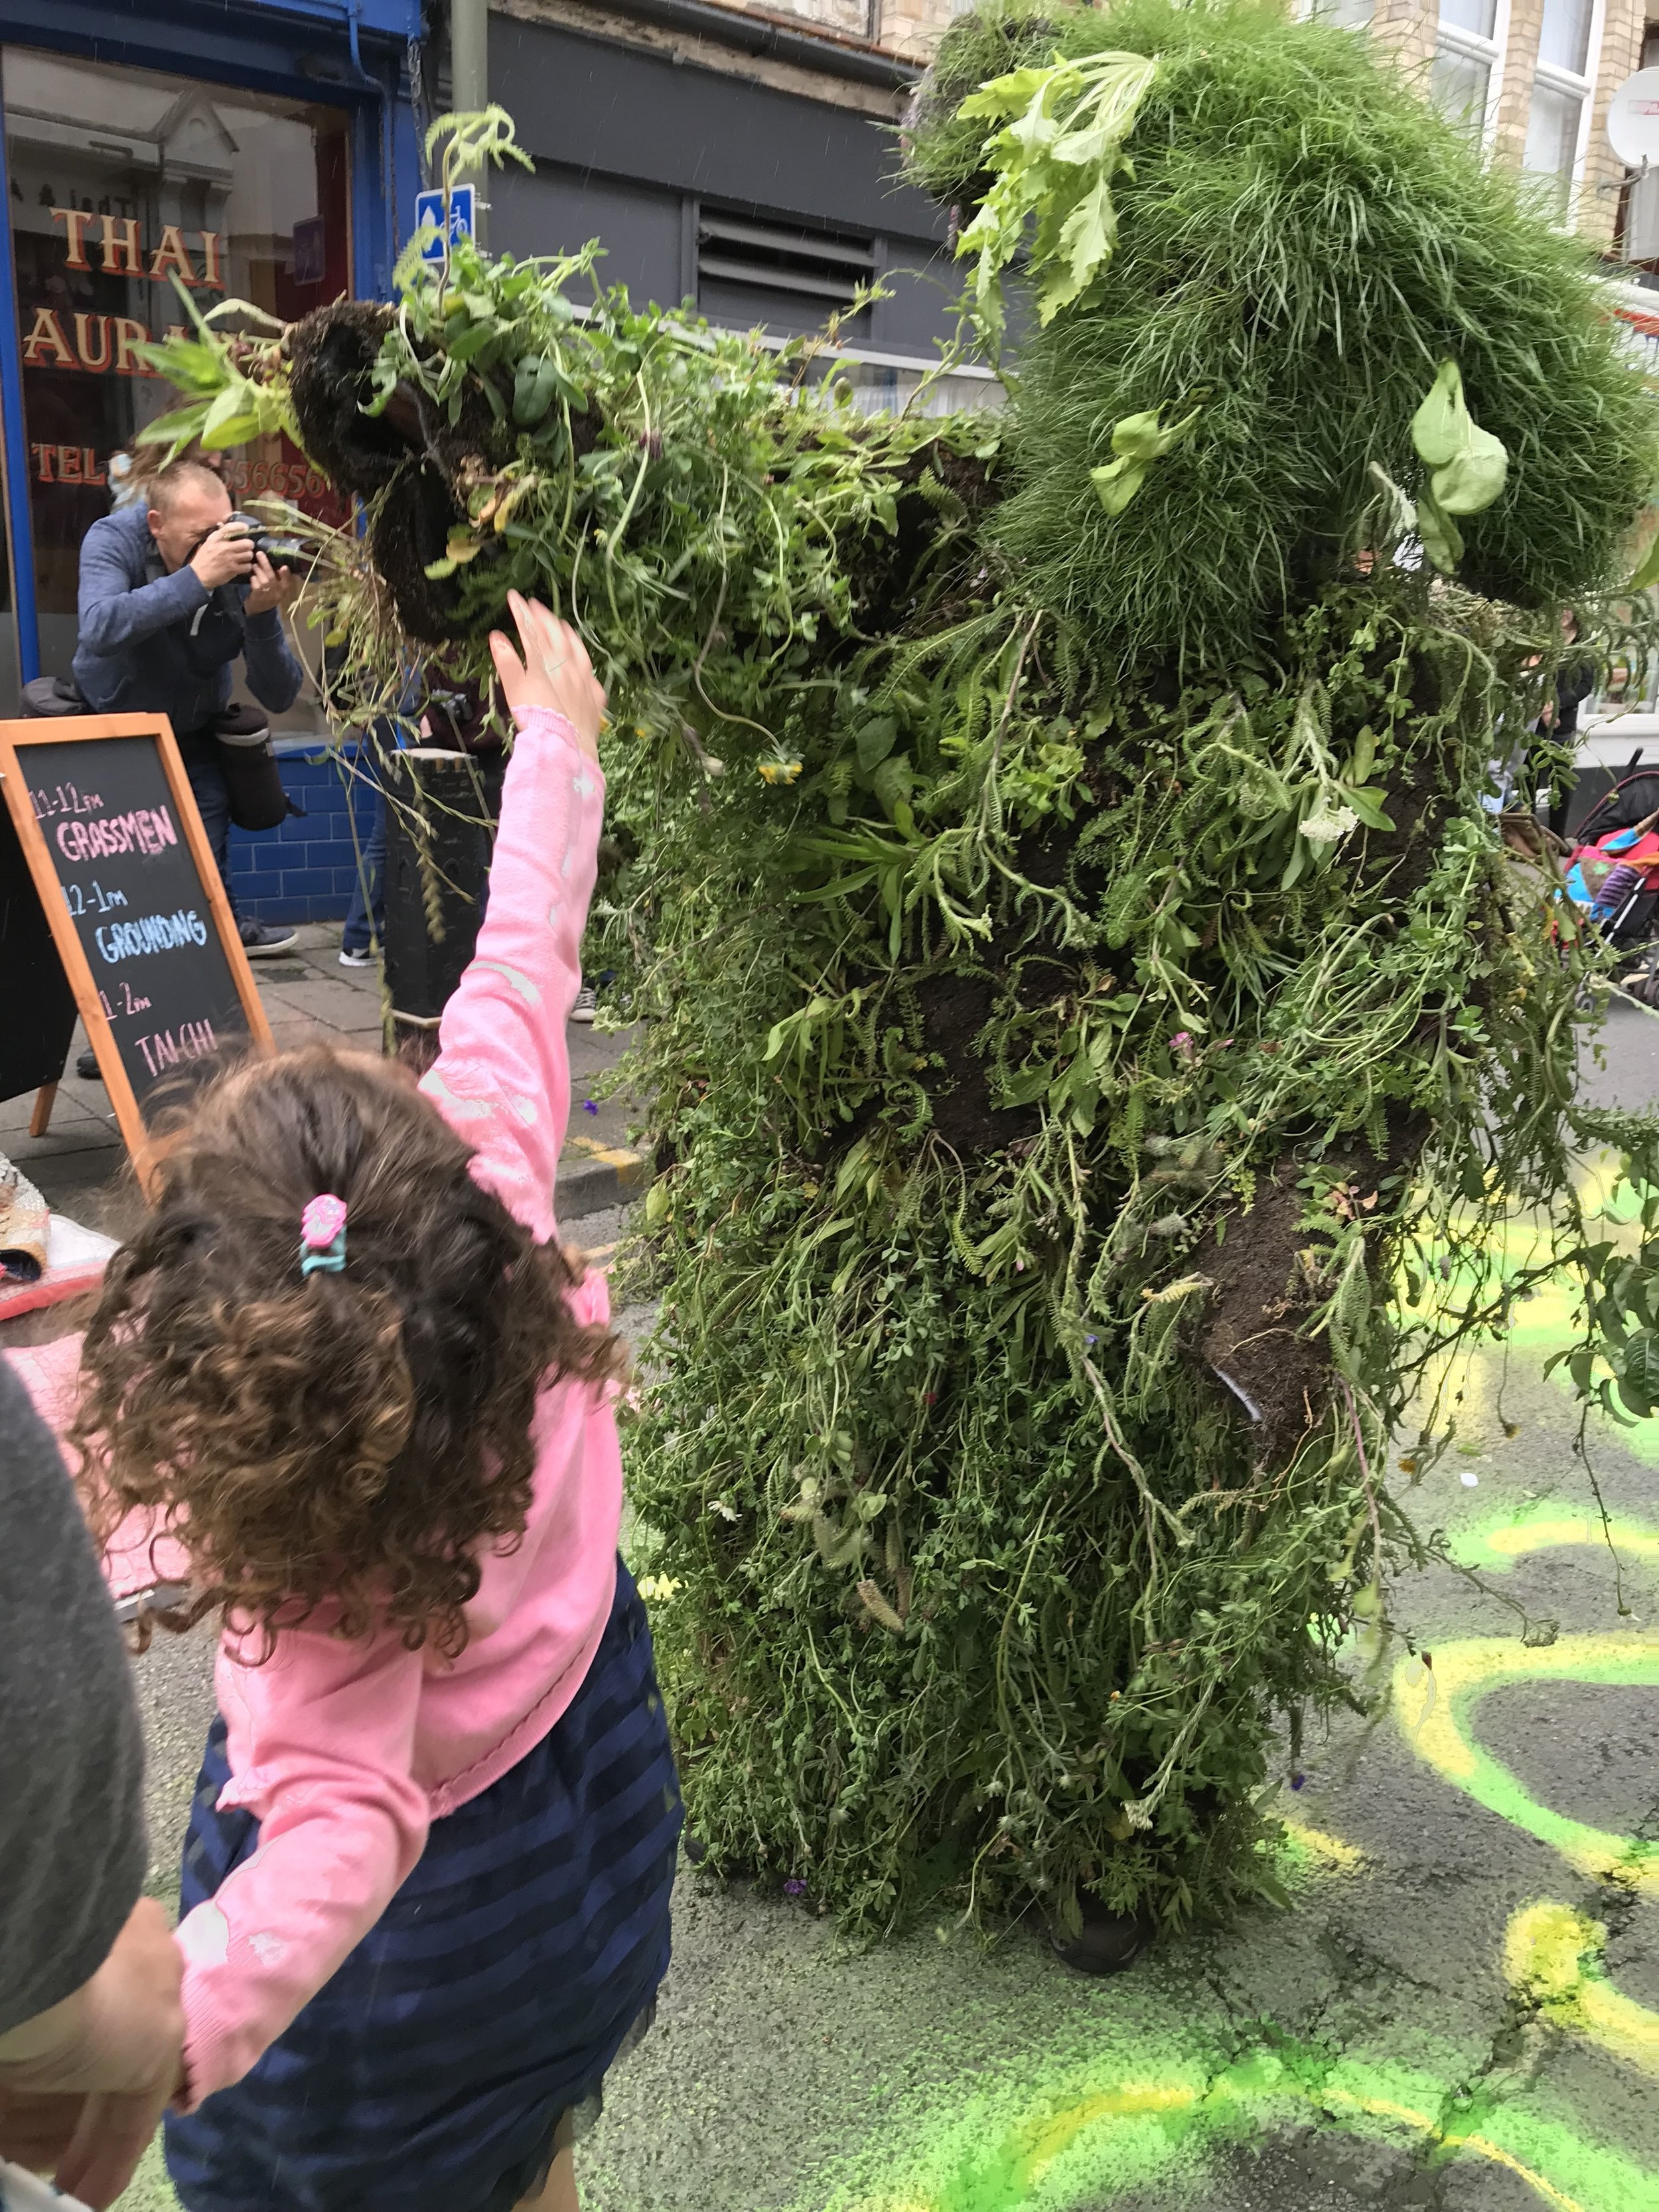 Winner Street Party - a road closure, some grass men and lots of activities and colour!